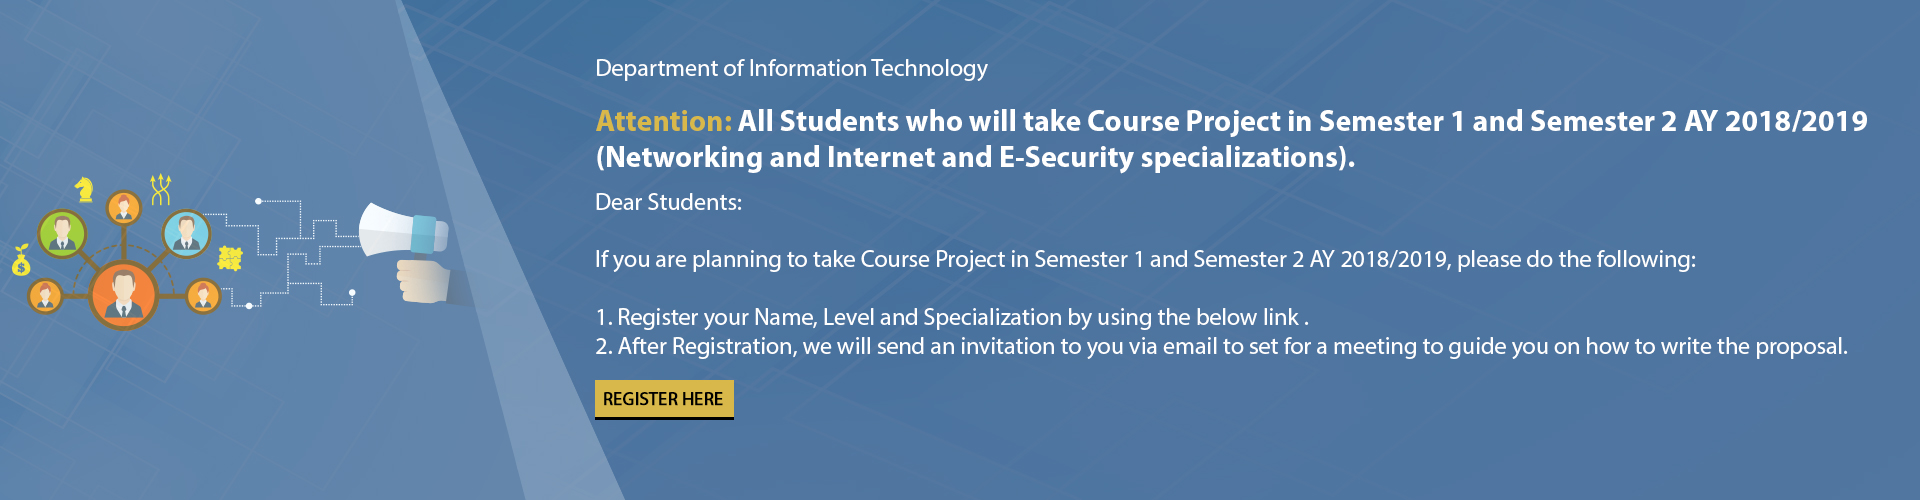 IT Course Project